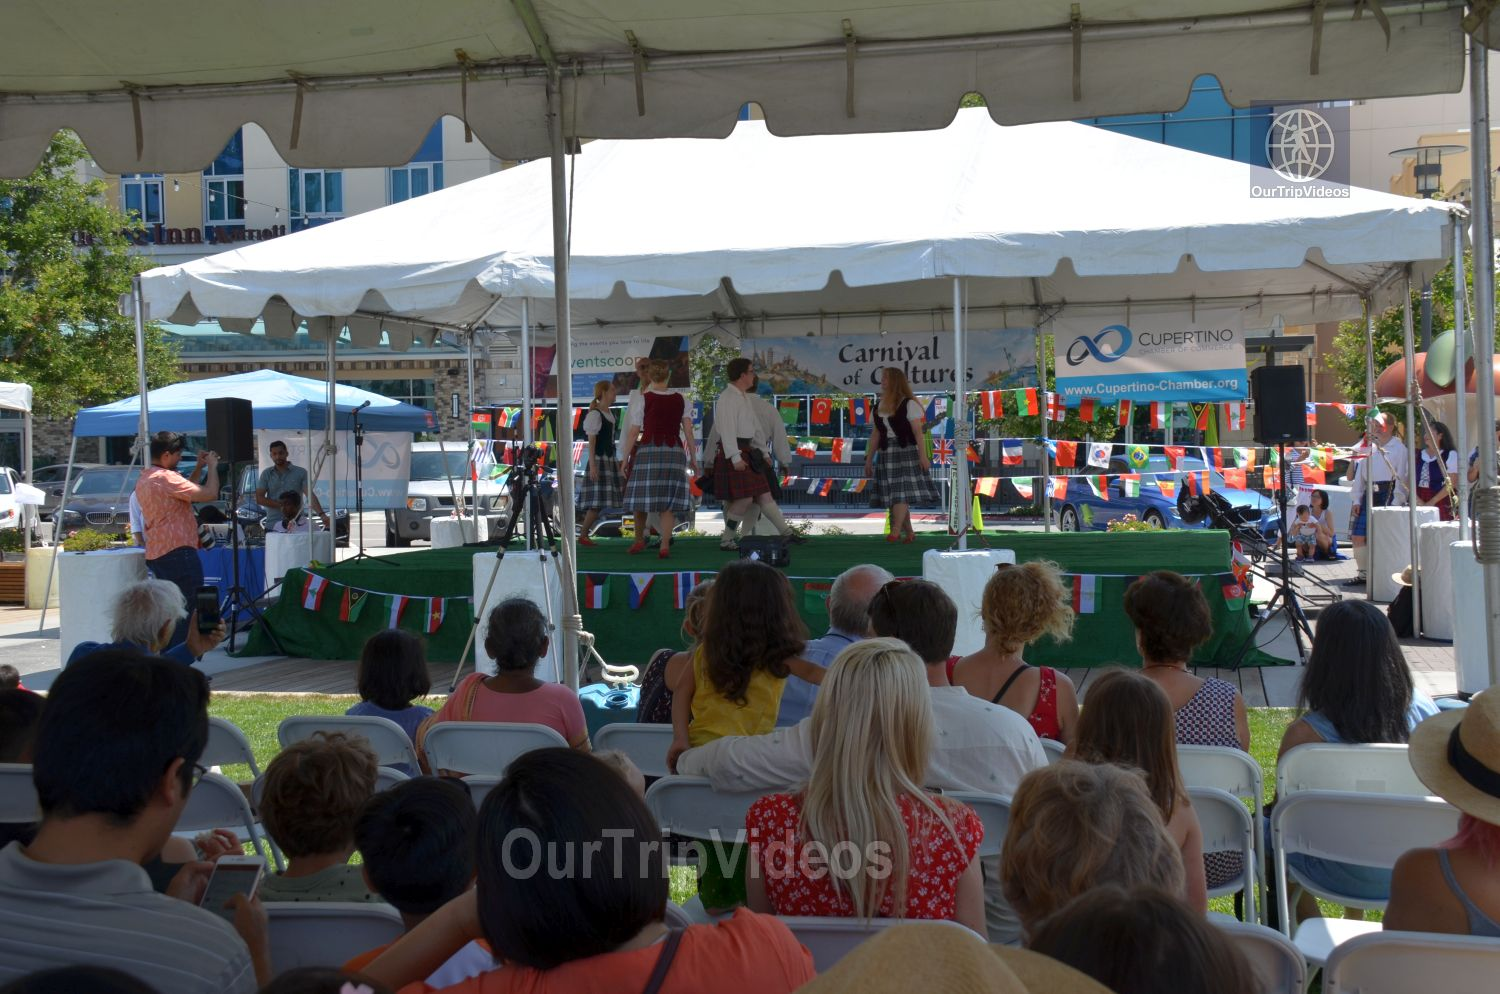 Carnival of Cultures, Cupertino, CA, USA - Picture 17 of 25